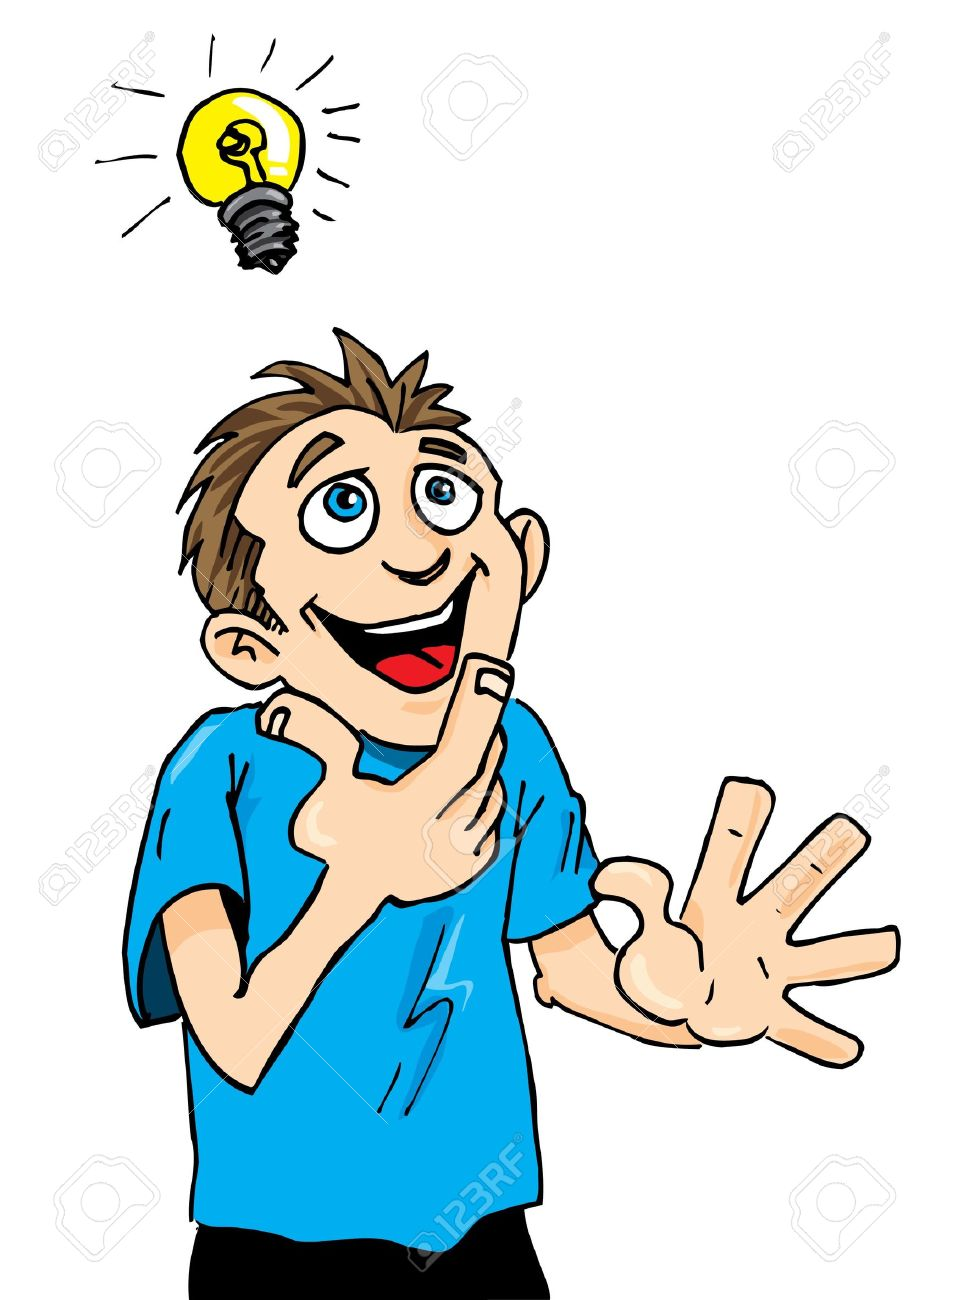 Cartoon Man Gets A Bright Idea Light Bulb Above His Head Stock Vector